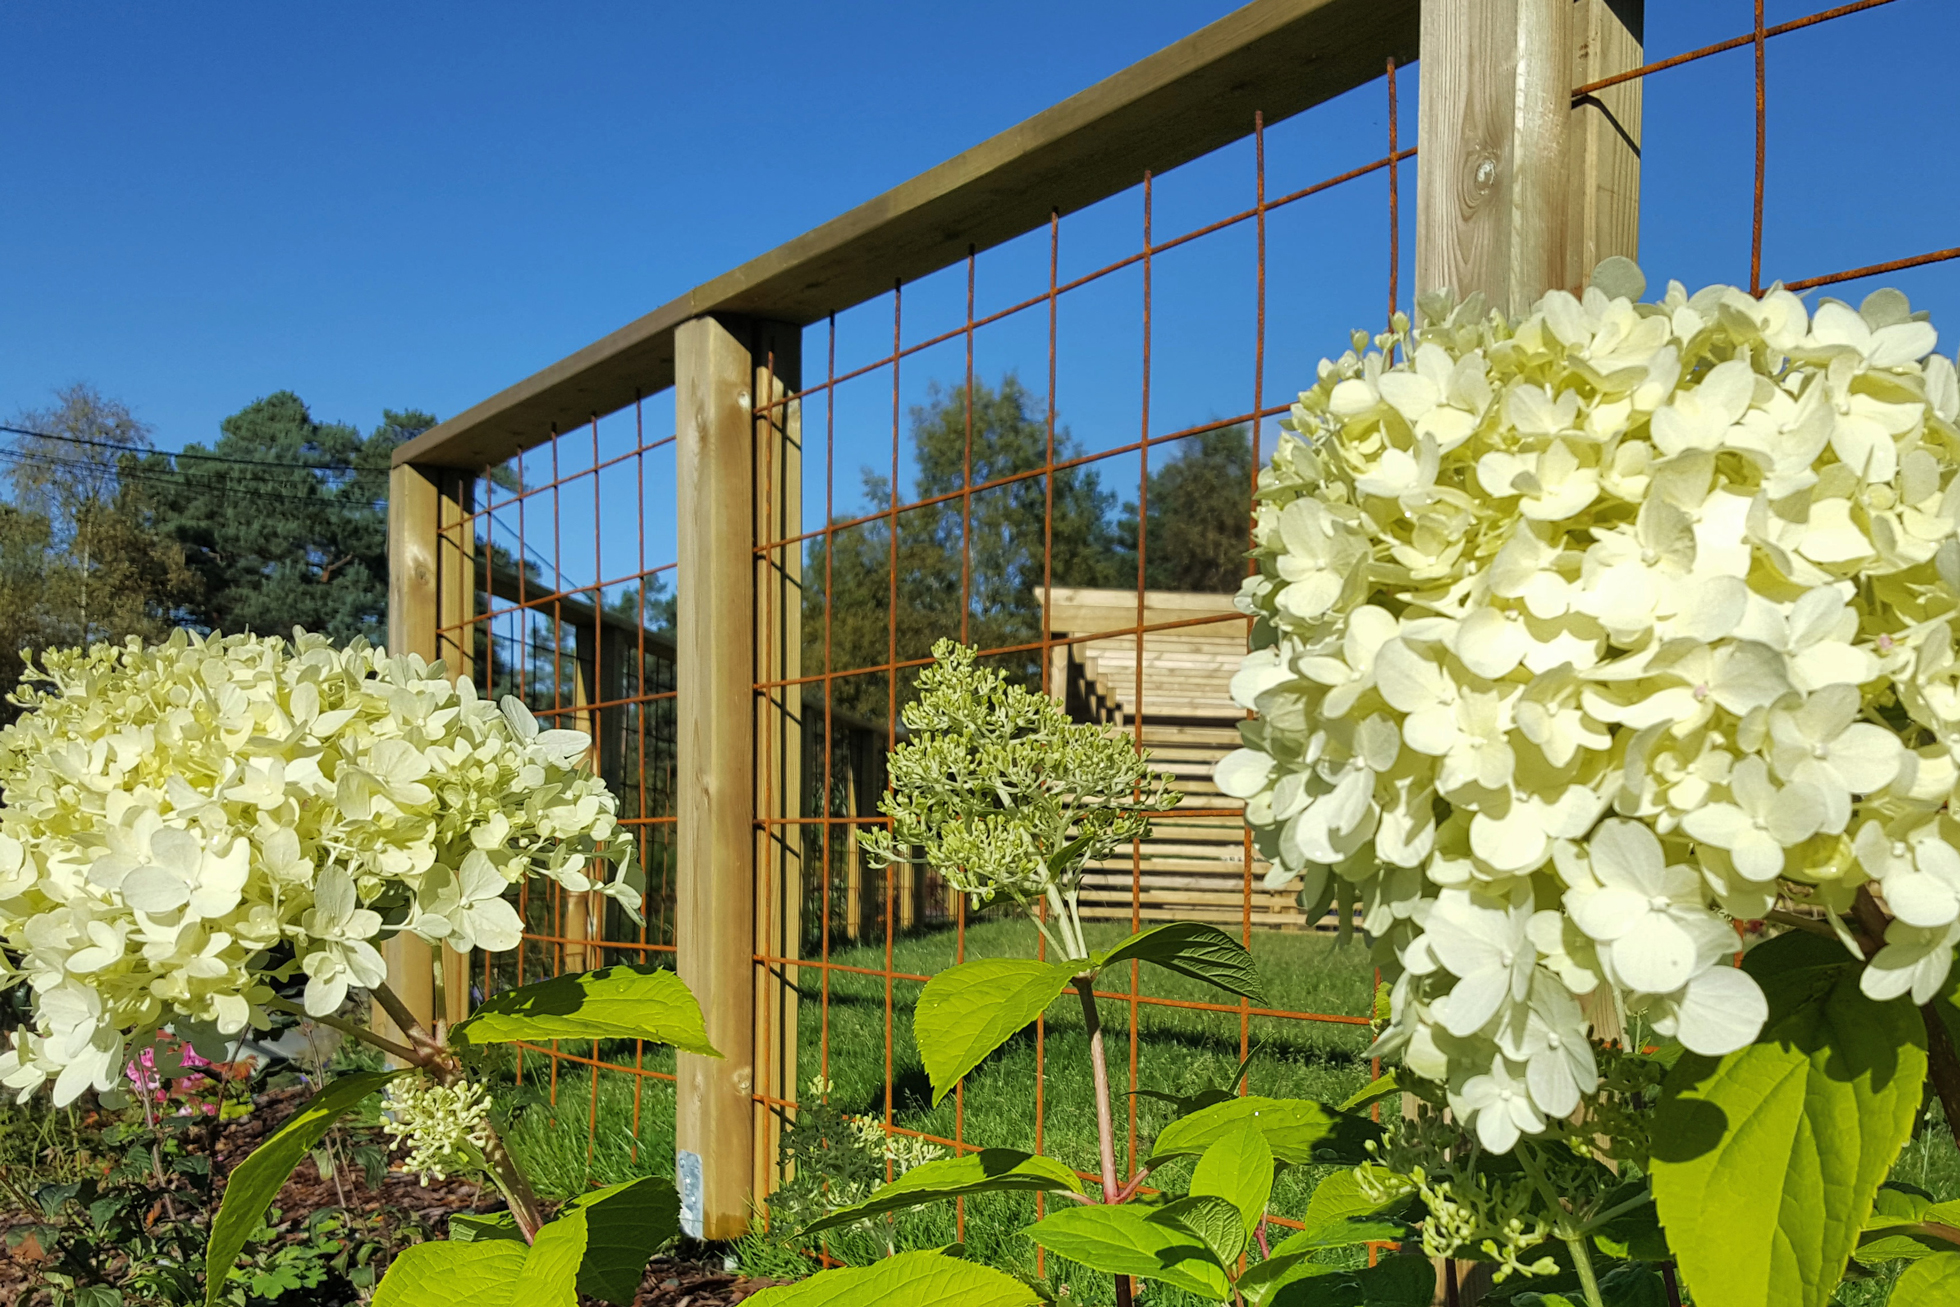 A garden fence with hydrangeas